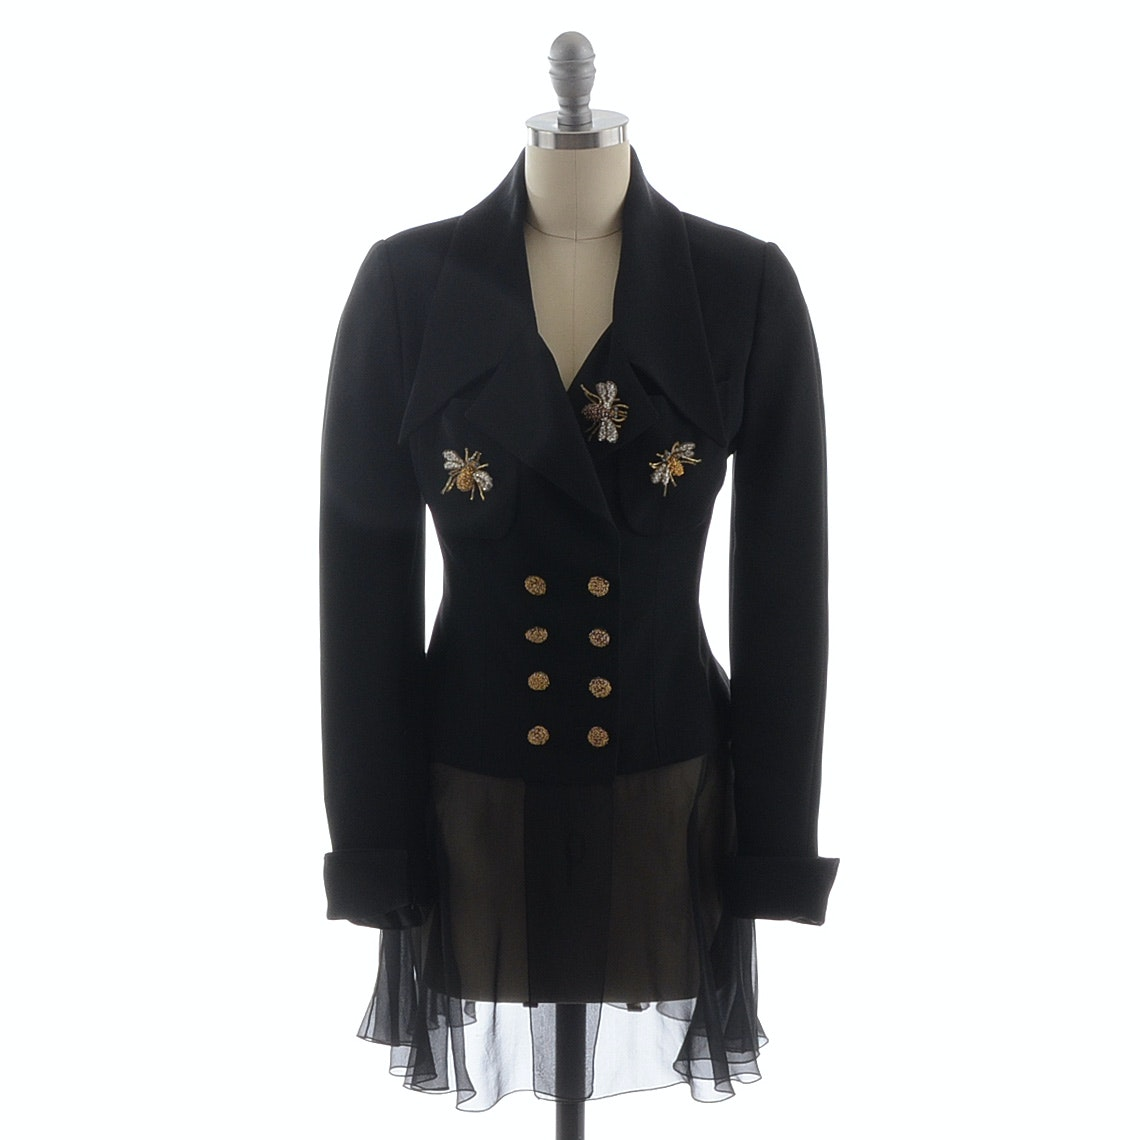 Karl Lagerfeld Double Breasted Black Blazer with Sequined Bee Applique and Silk Chiffon Hemline